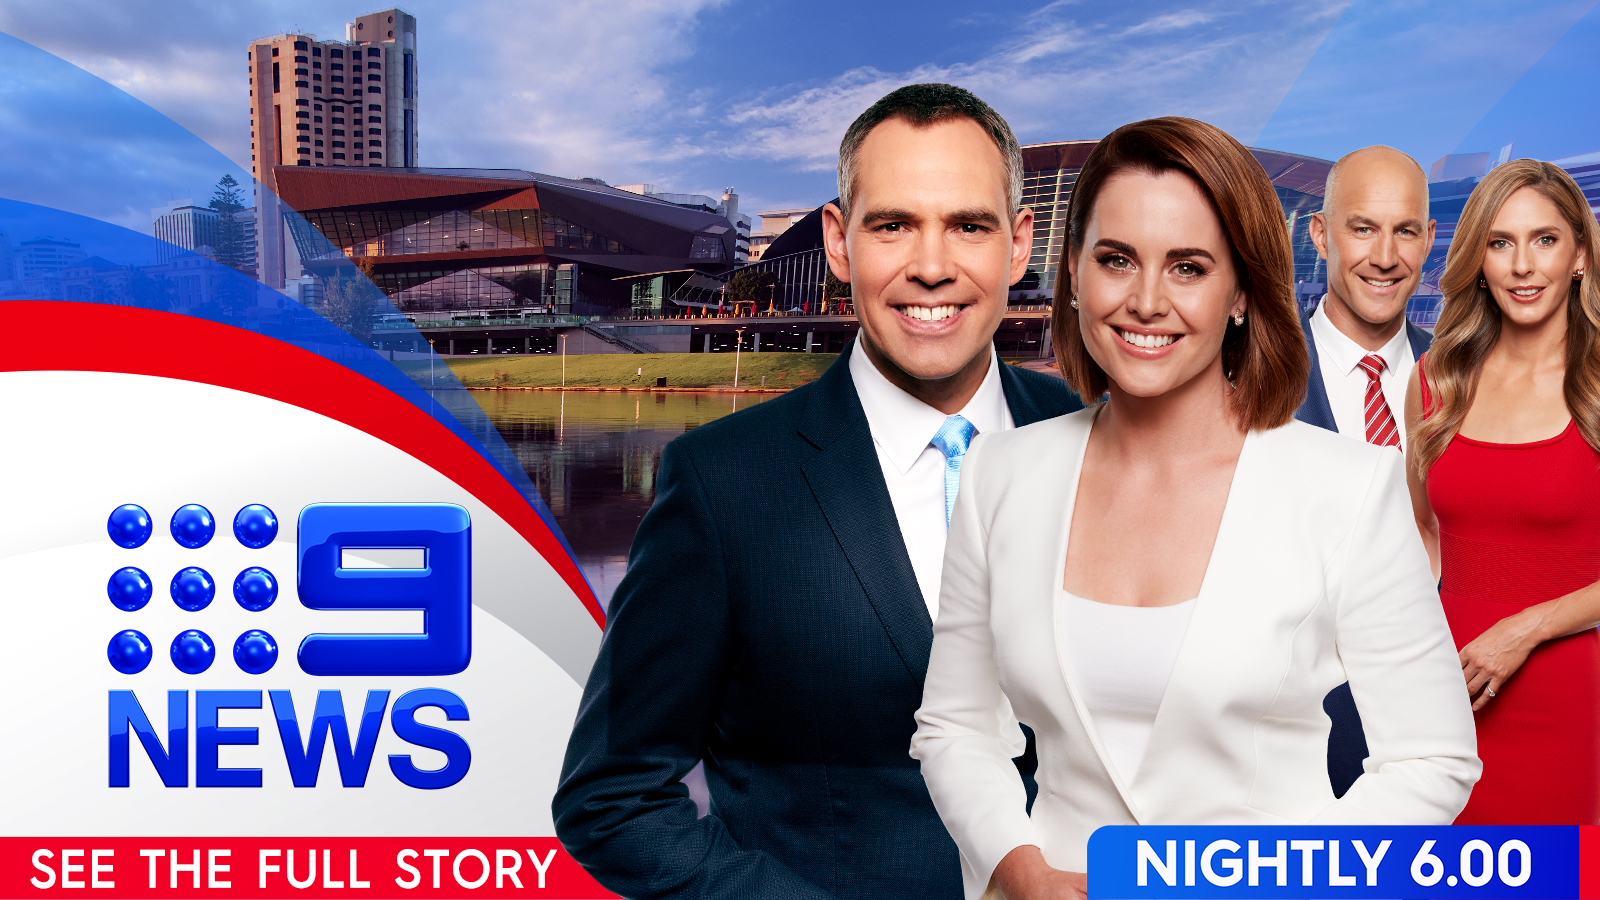 Adelaide 9 news meet the team